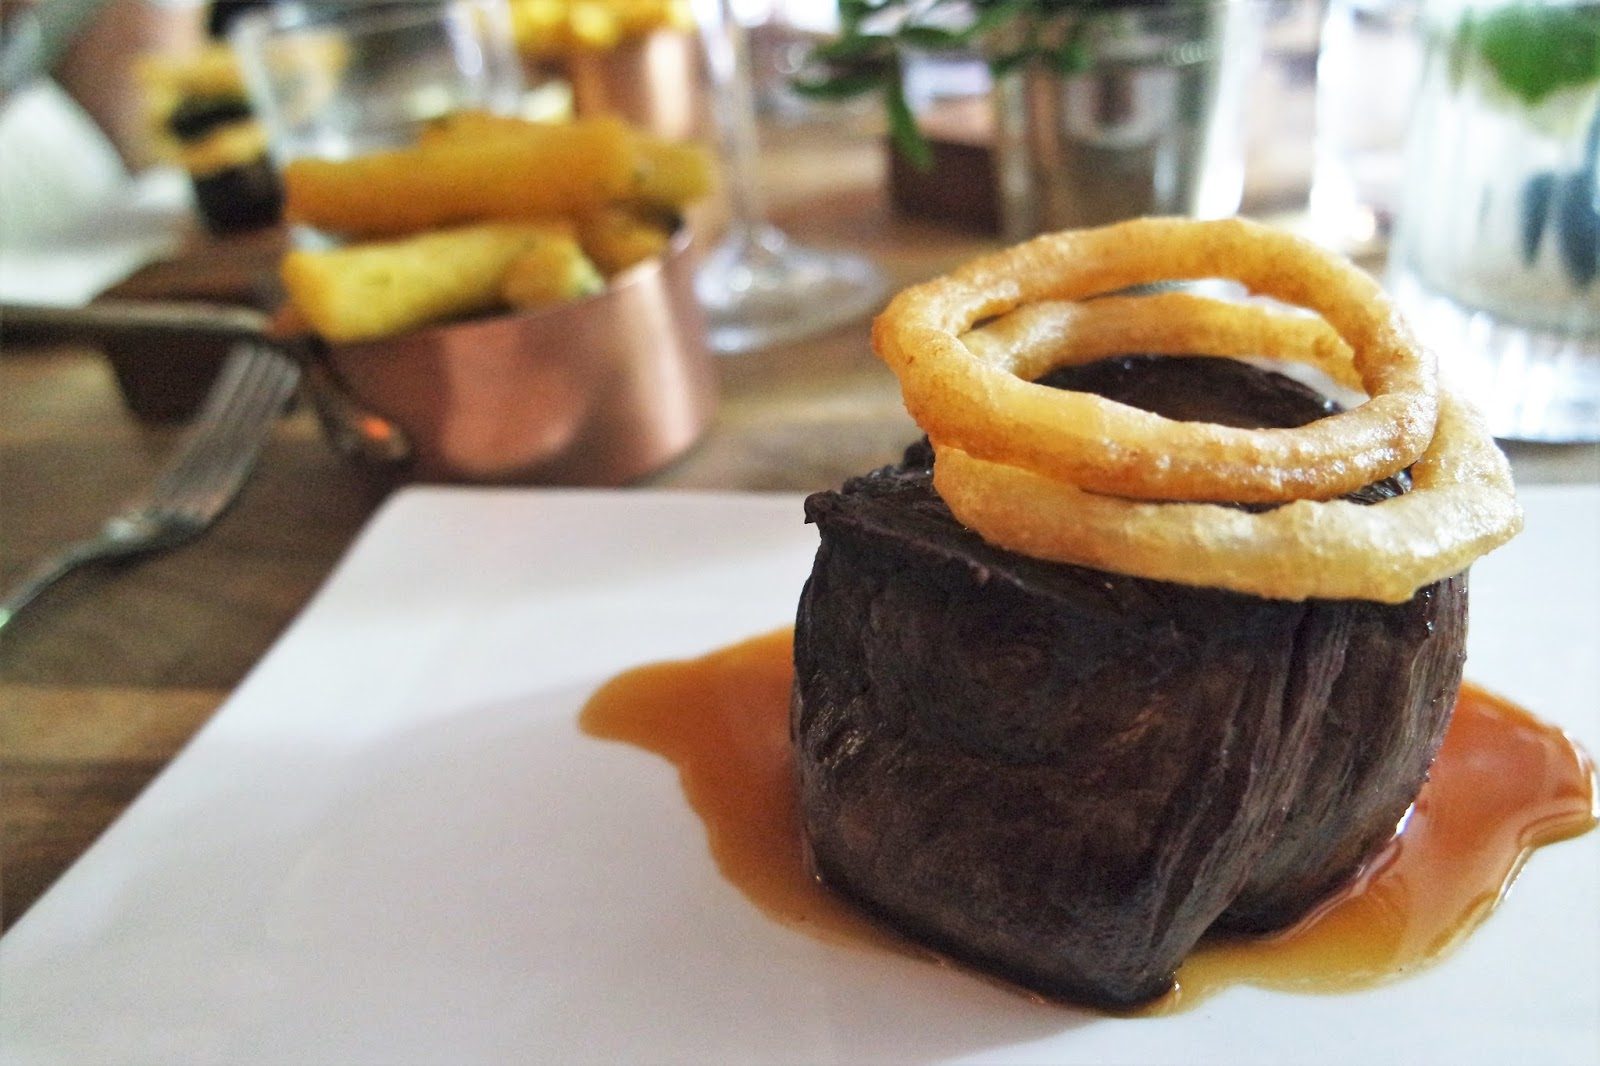 Tom Kerridge Hand and Flowers Beef Fillet and Chips